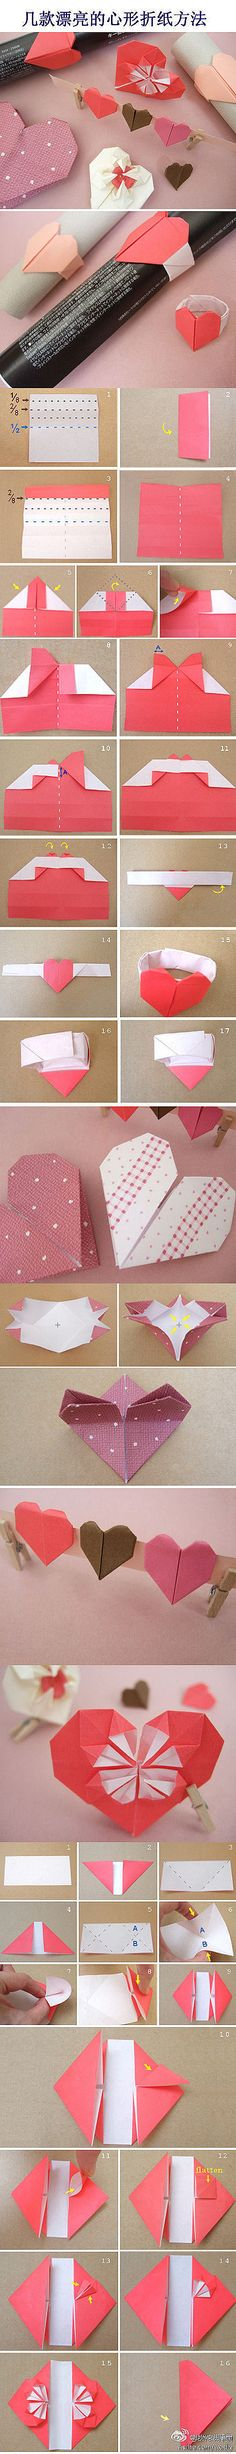 Origami Hearts! Just follow the step-by-step directions in the photo for some Valentine's Day fun!